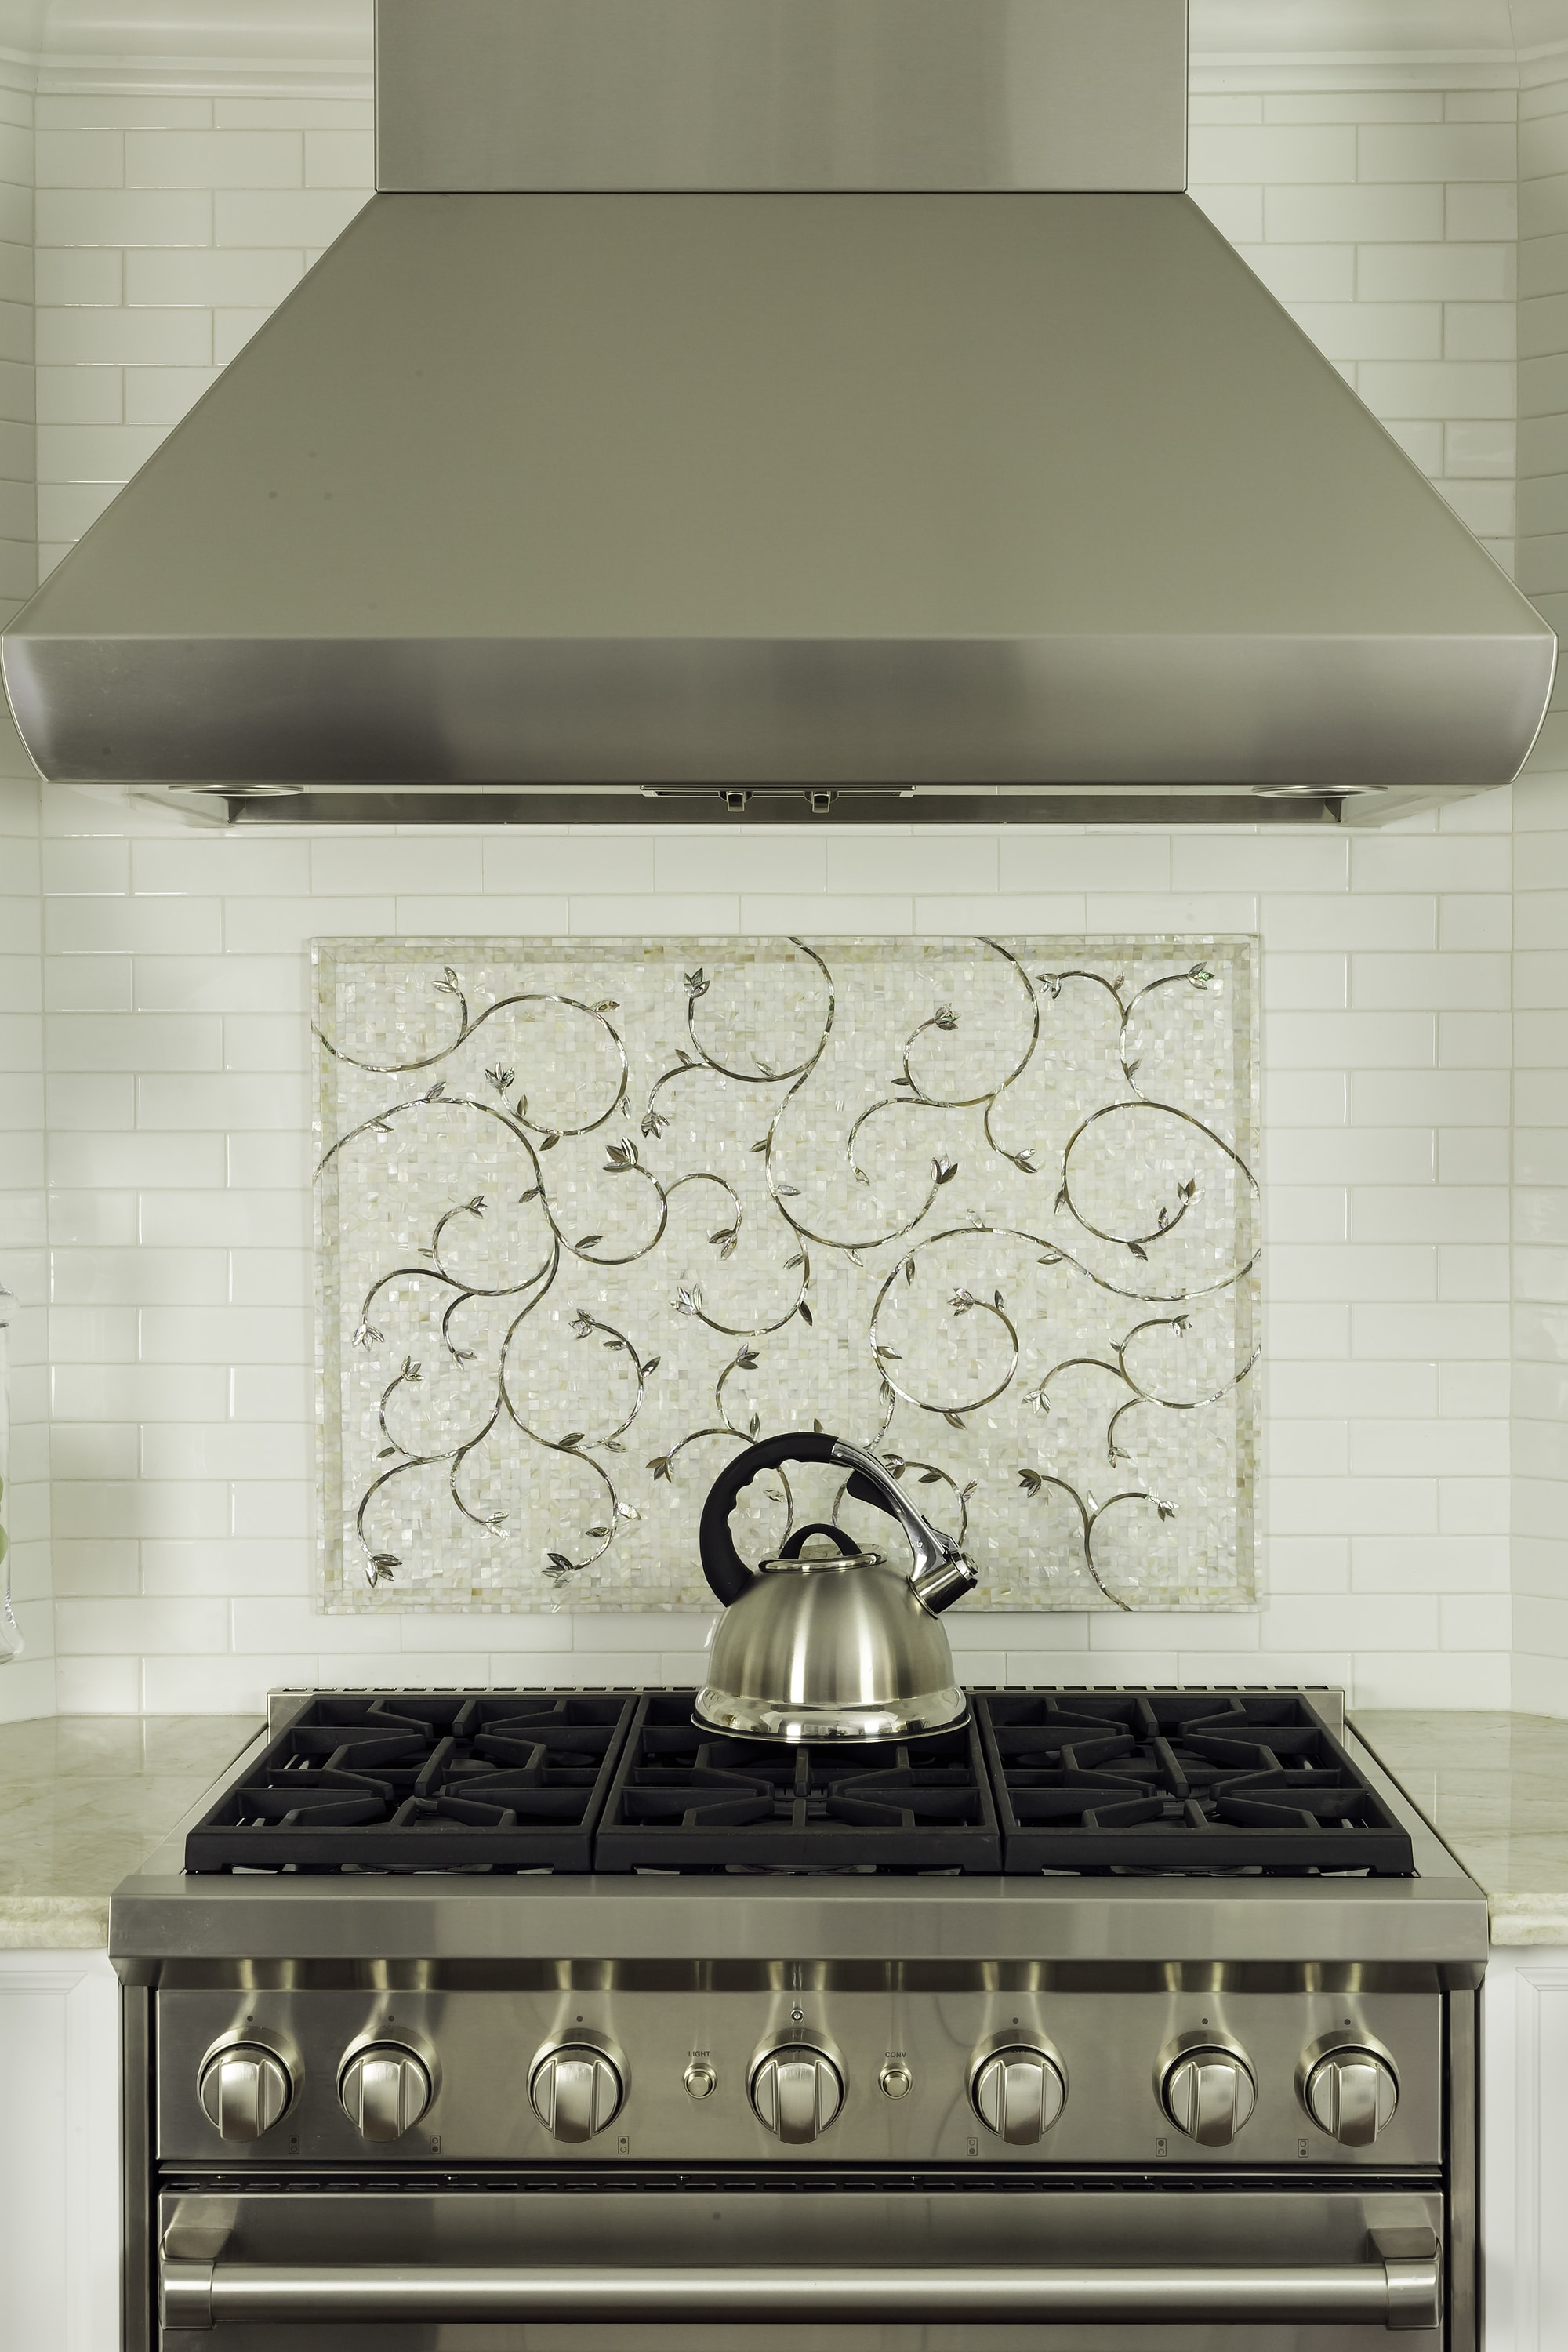 Transitional style kitchen with stainless steel range roven